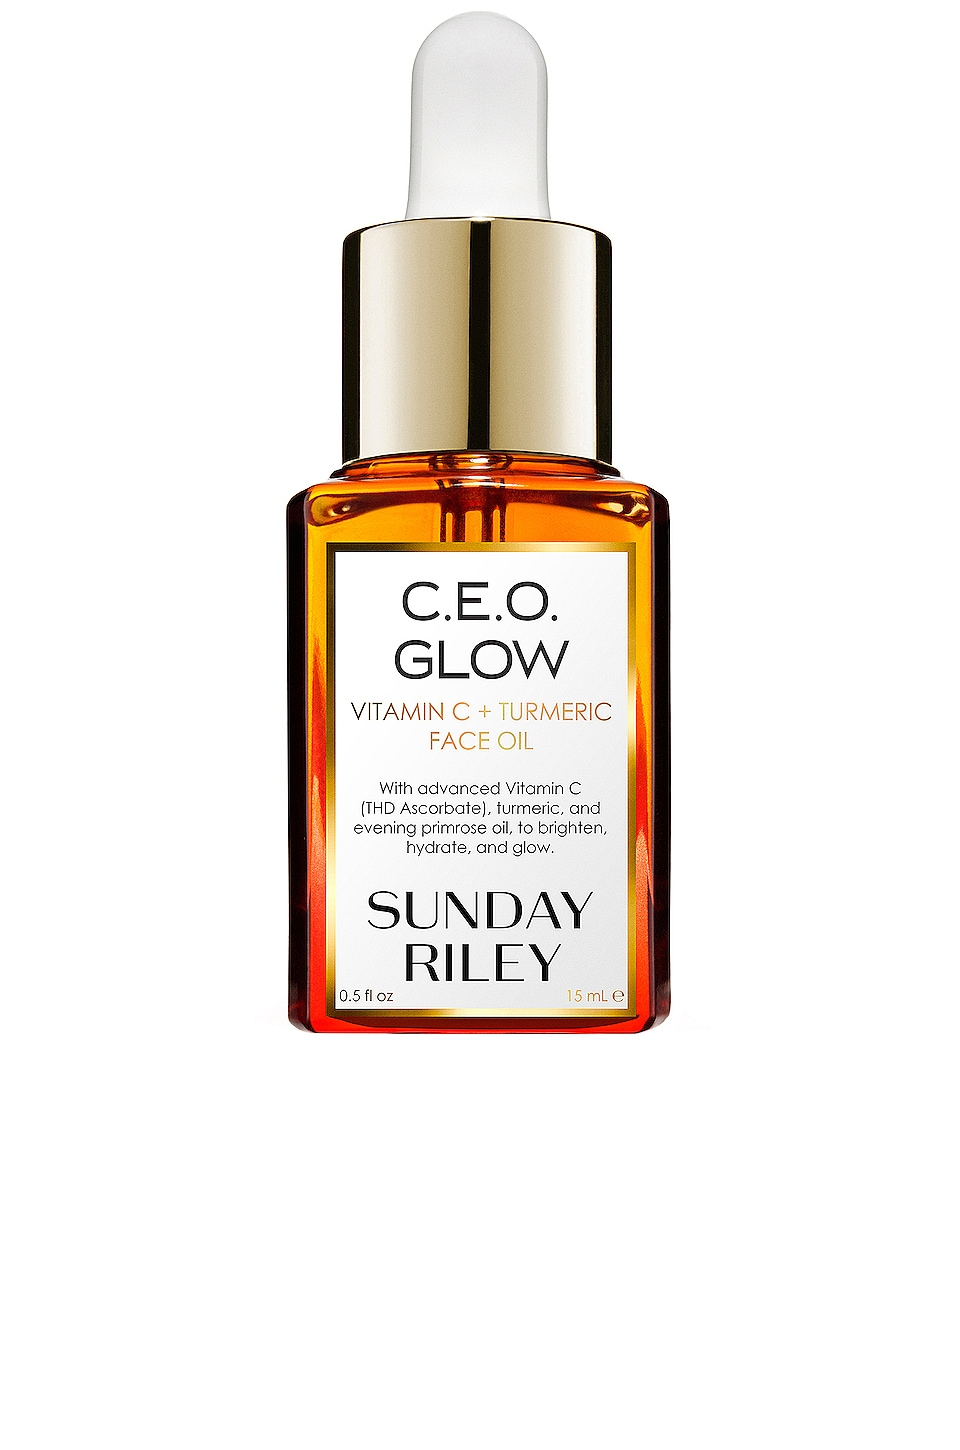 Sunday Riley Travel C.E.O. Glow Vitamin C + Turmeric Face Oil